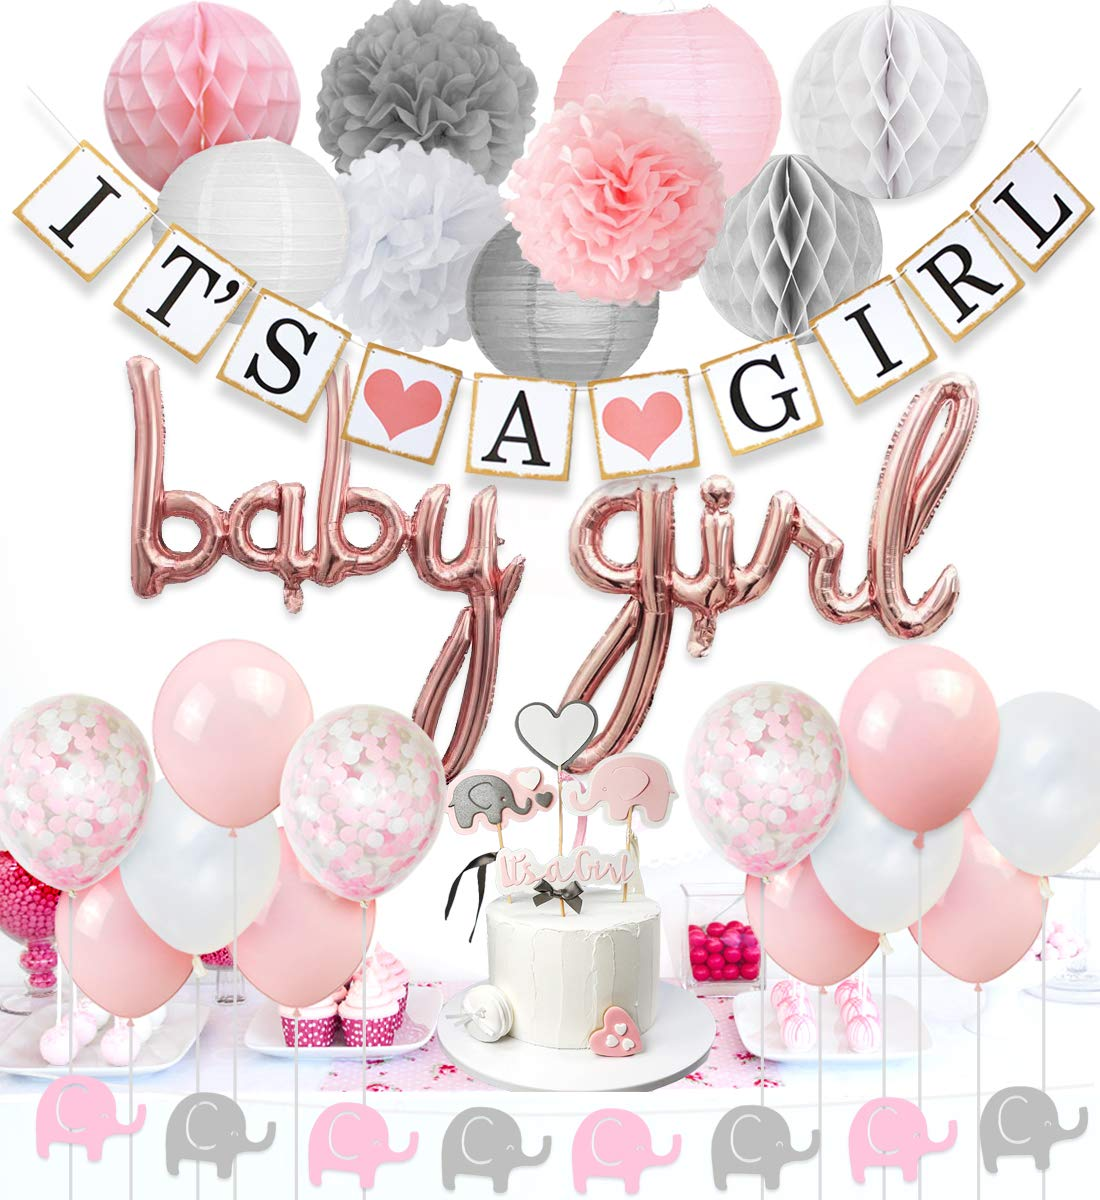 Baby Shower Decorations for Girls Pink and White, Baby Girl Balloons, Elephant Garland, Confetti Balloons, Elephant Cake Topper for Baby Shower Supplies